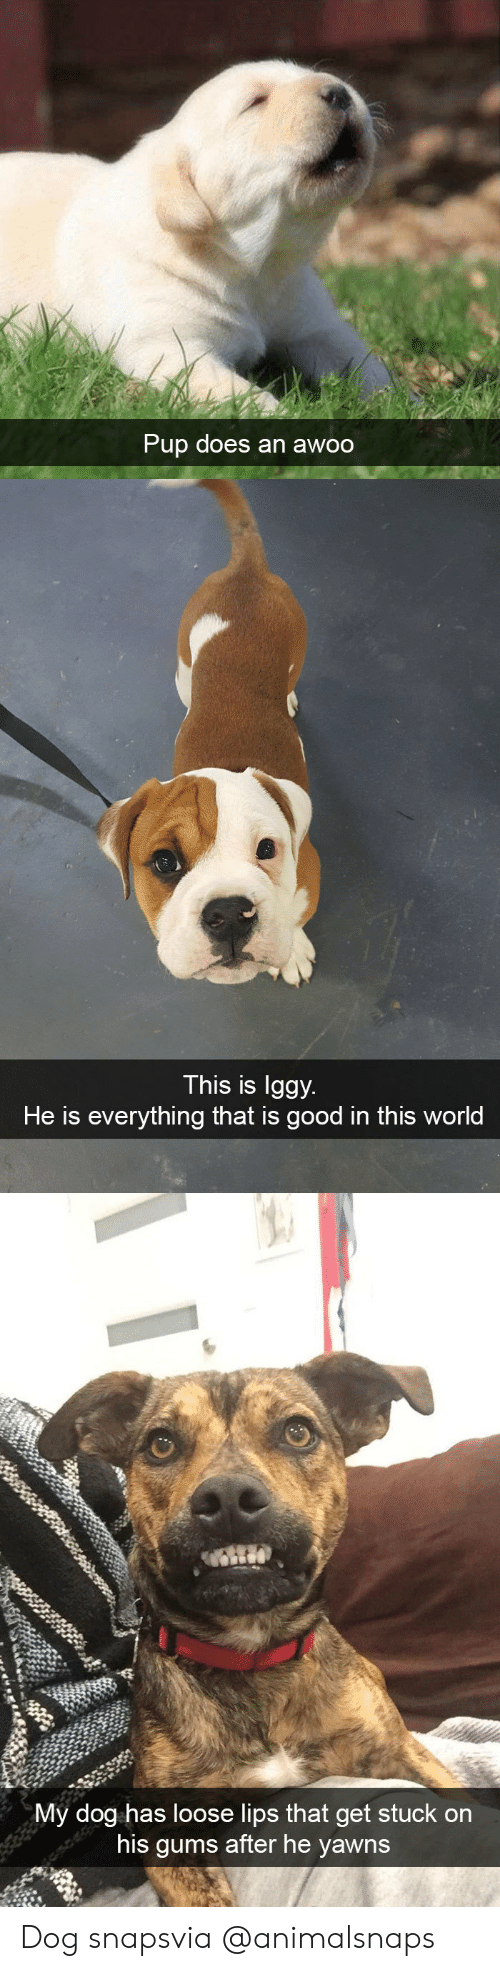 Target, Tumblr, and Good: Pup does an a  woo   This is lggy.  He is everything that is good in this world   My dog has loose lips that get stuck on  his qums after he vawns Dog snapsvia @animalsnaps